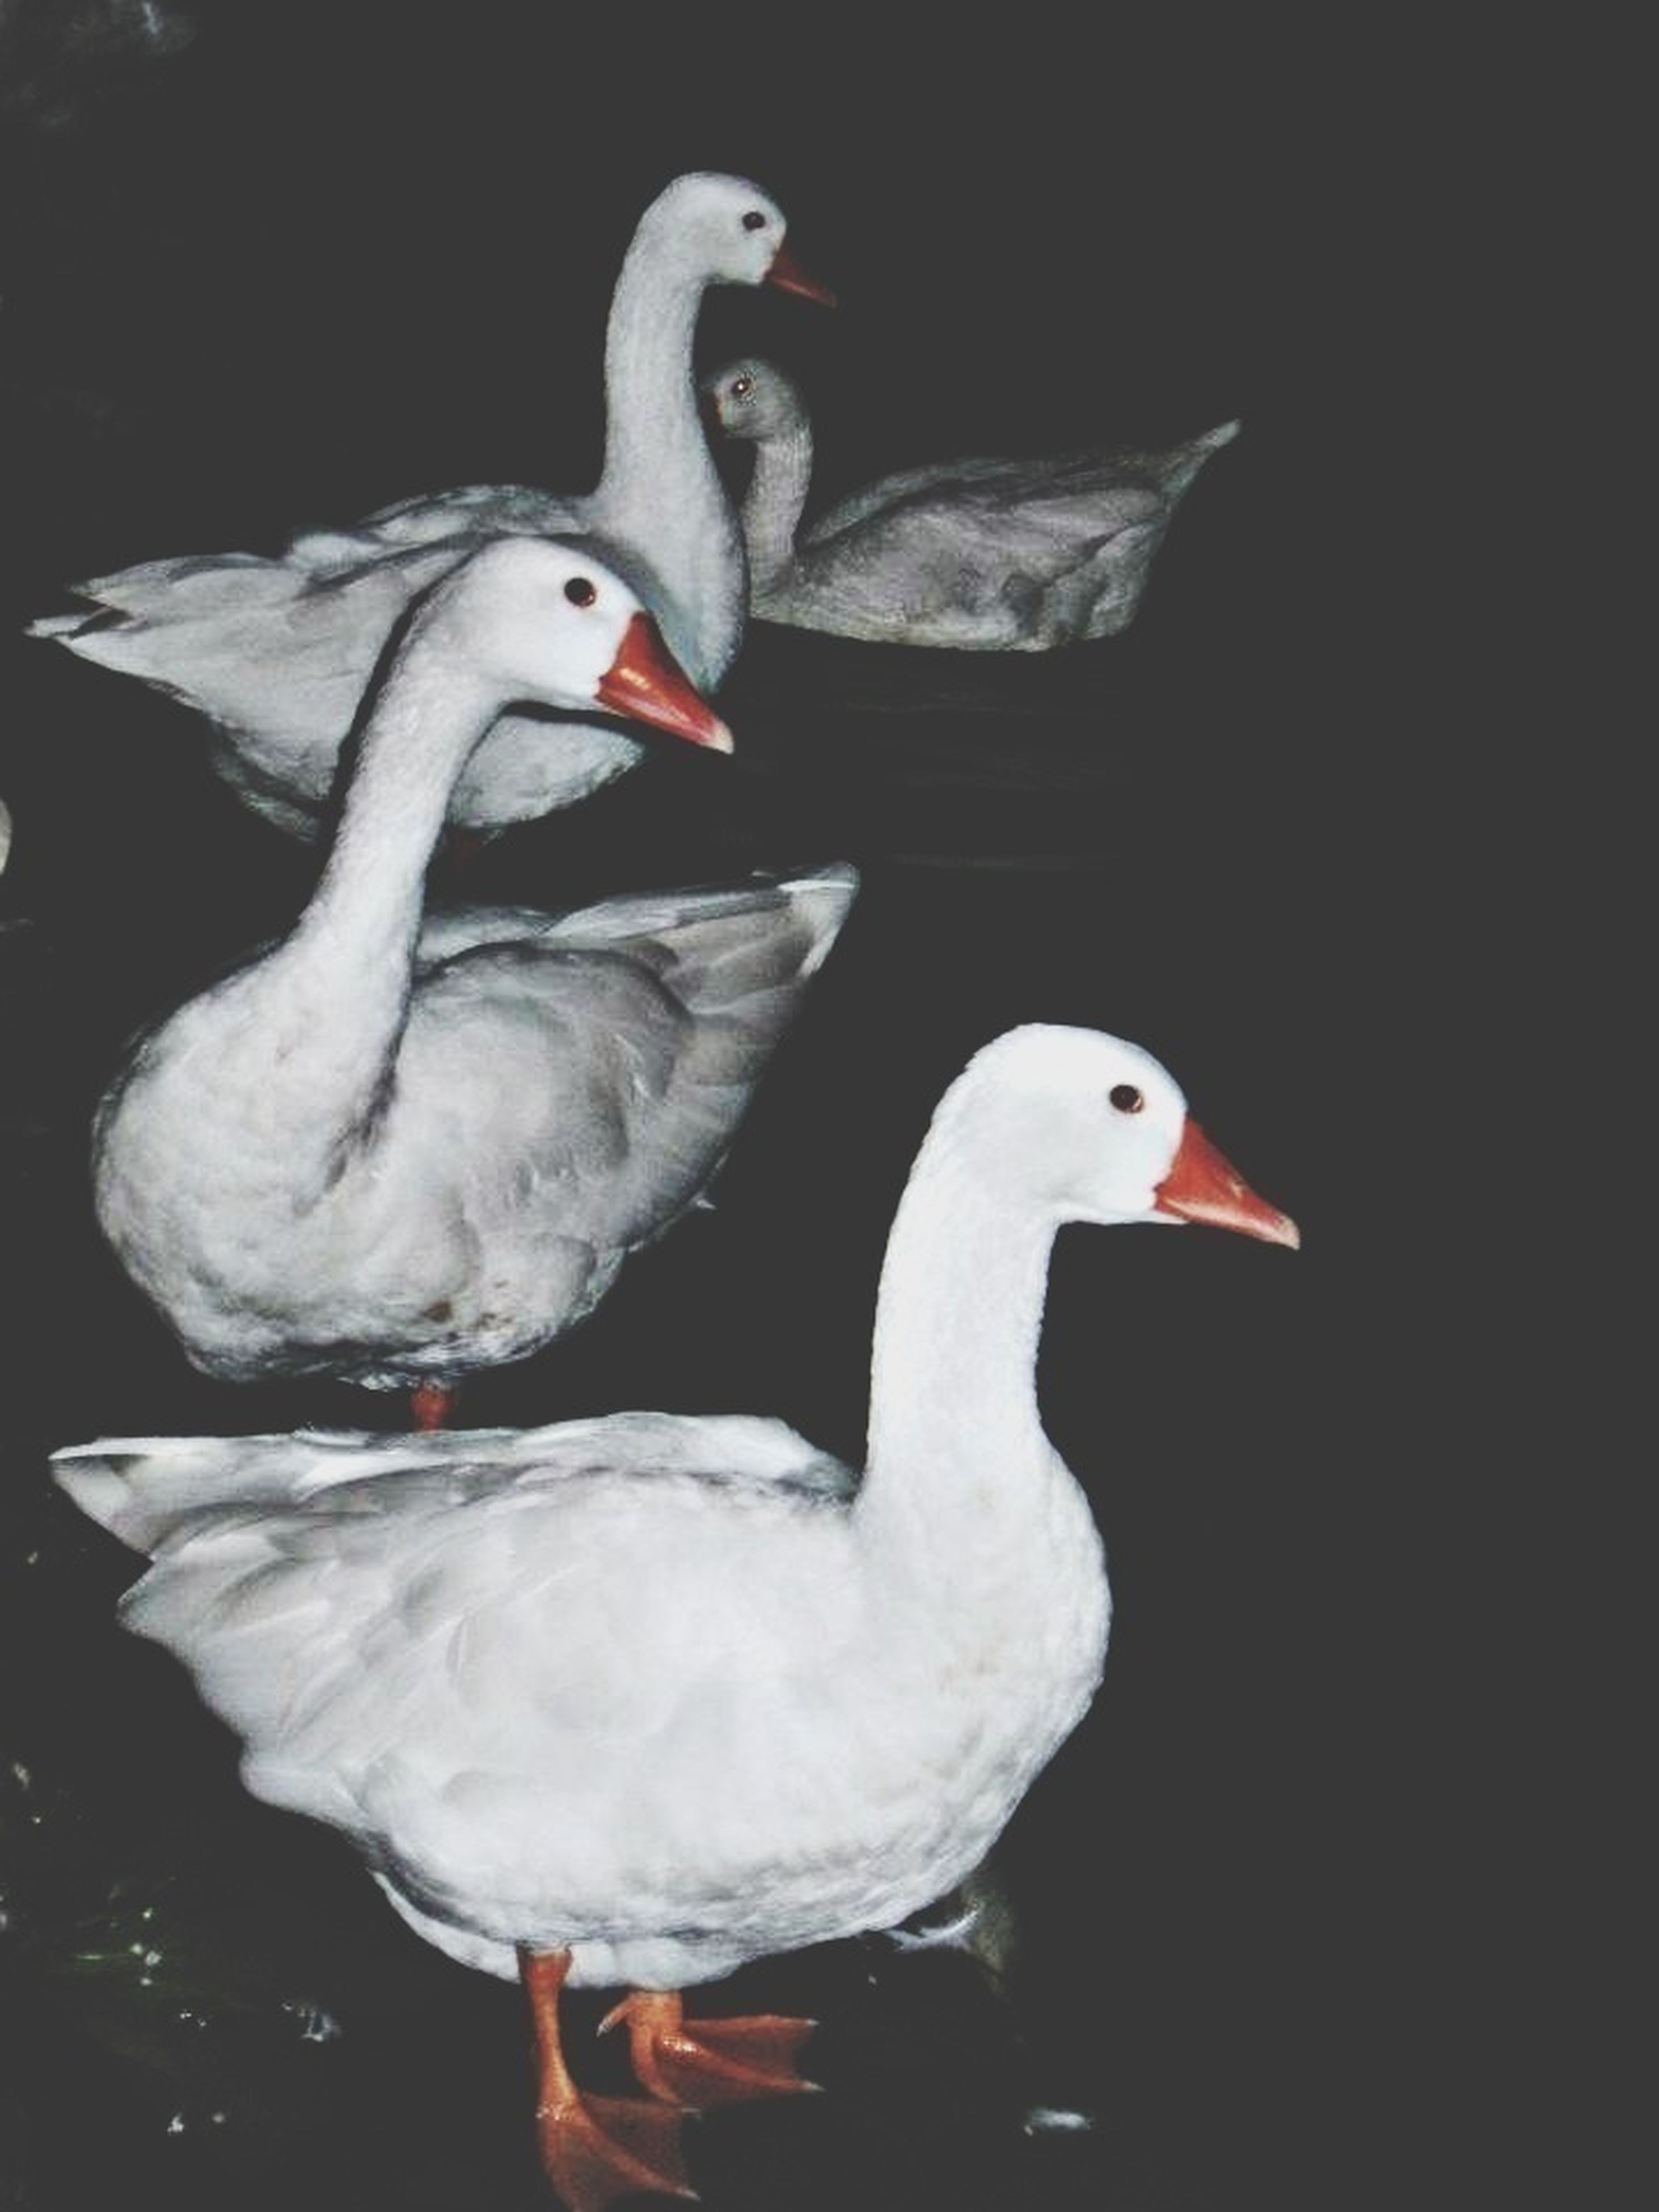 animal themes, bird, animals in the wild, wildlife, beak, swan, duck, one animal, white color, two animals, close-up, nature, lake, outdoors, togetherness, zoology, water bird, no people, side view